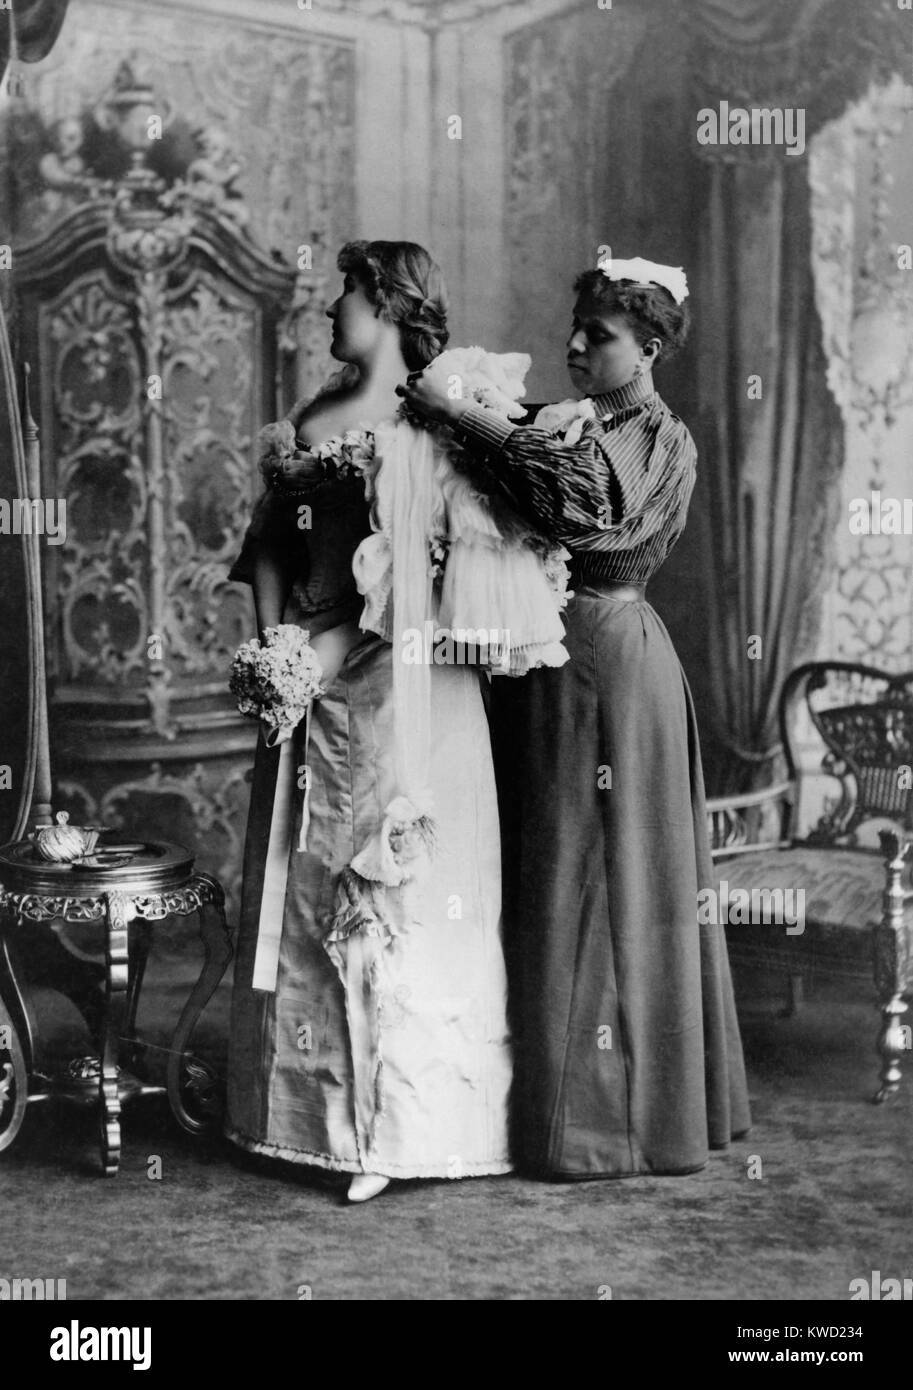 African American ladys maid helps a wealthy woman get dressed in luxurious evening gown, 1897.  (BSLOC_2017_20_111) - Stock Image